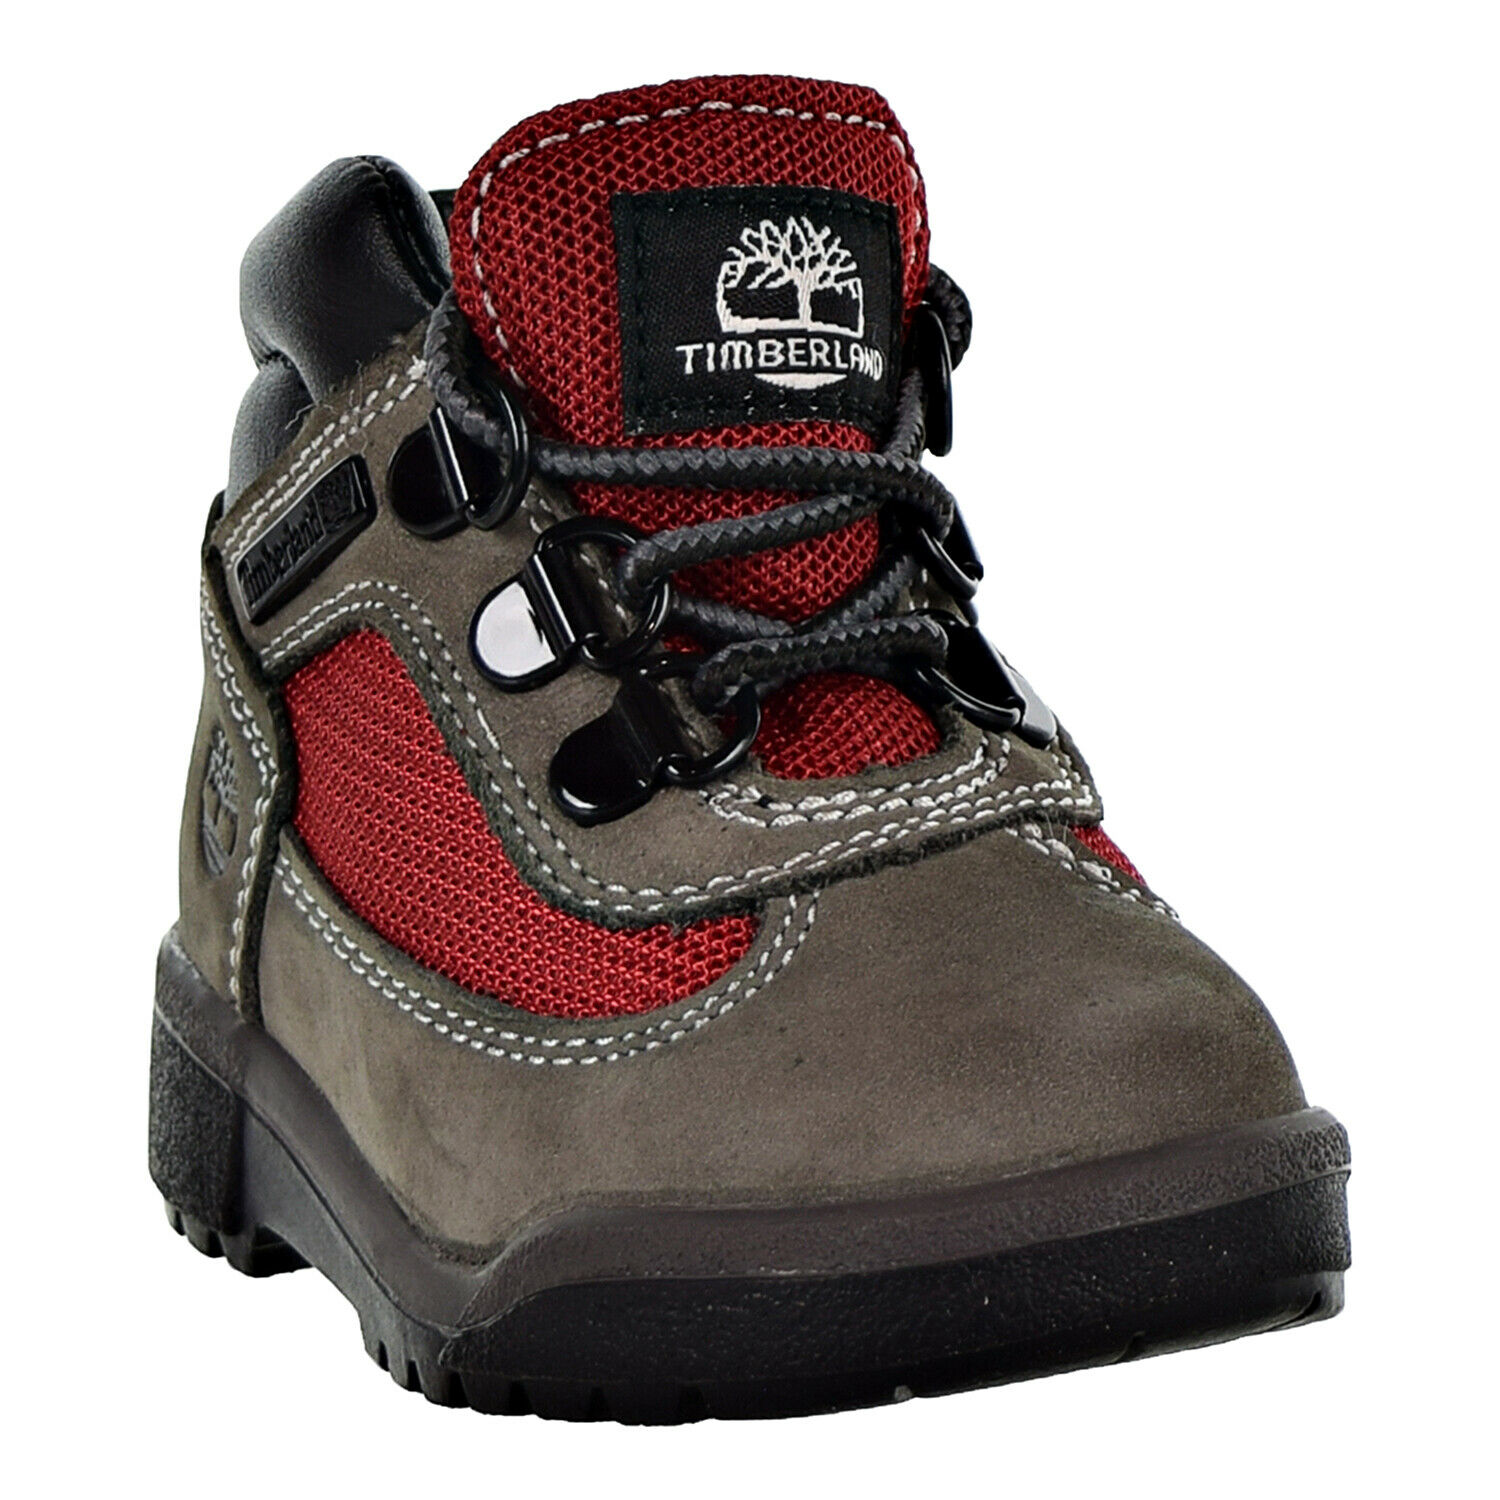 Timberland Field Boot L-F Mid Toddler's Shoes Grey-Red TB0A1ROS 1